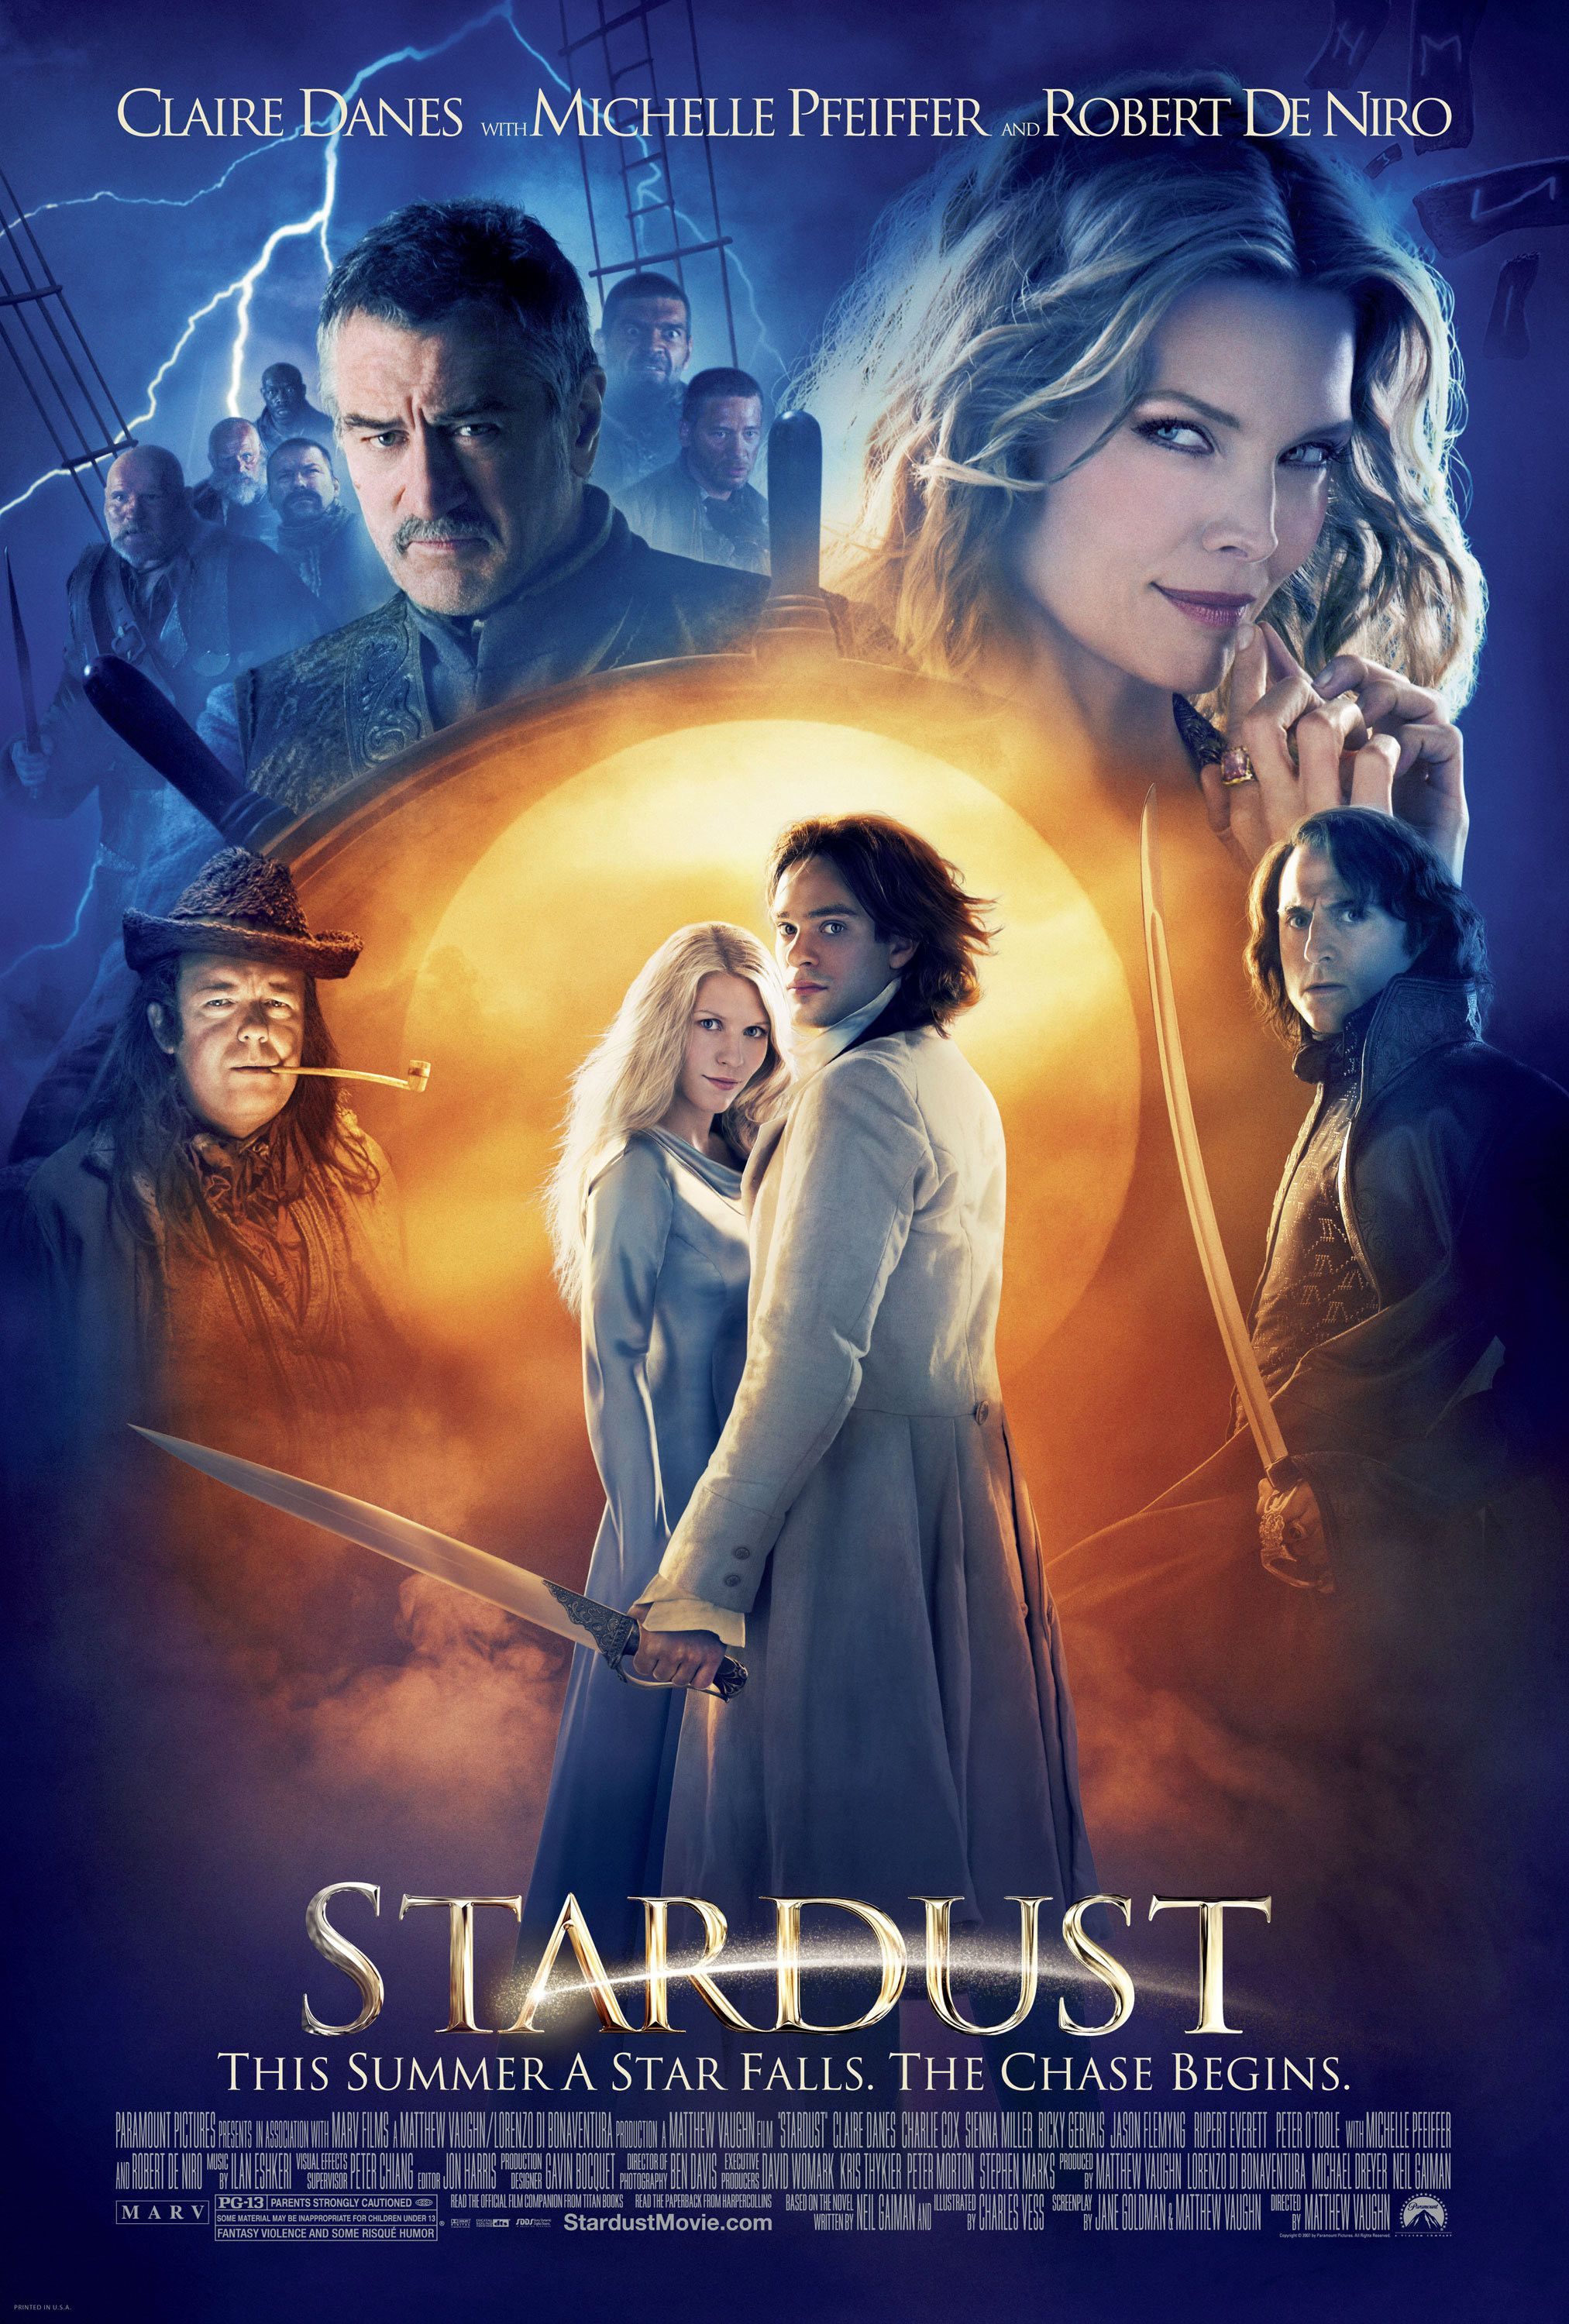 Stardust 2007 I Saw This In Theaters When It First Came Out